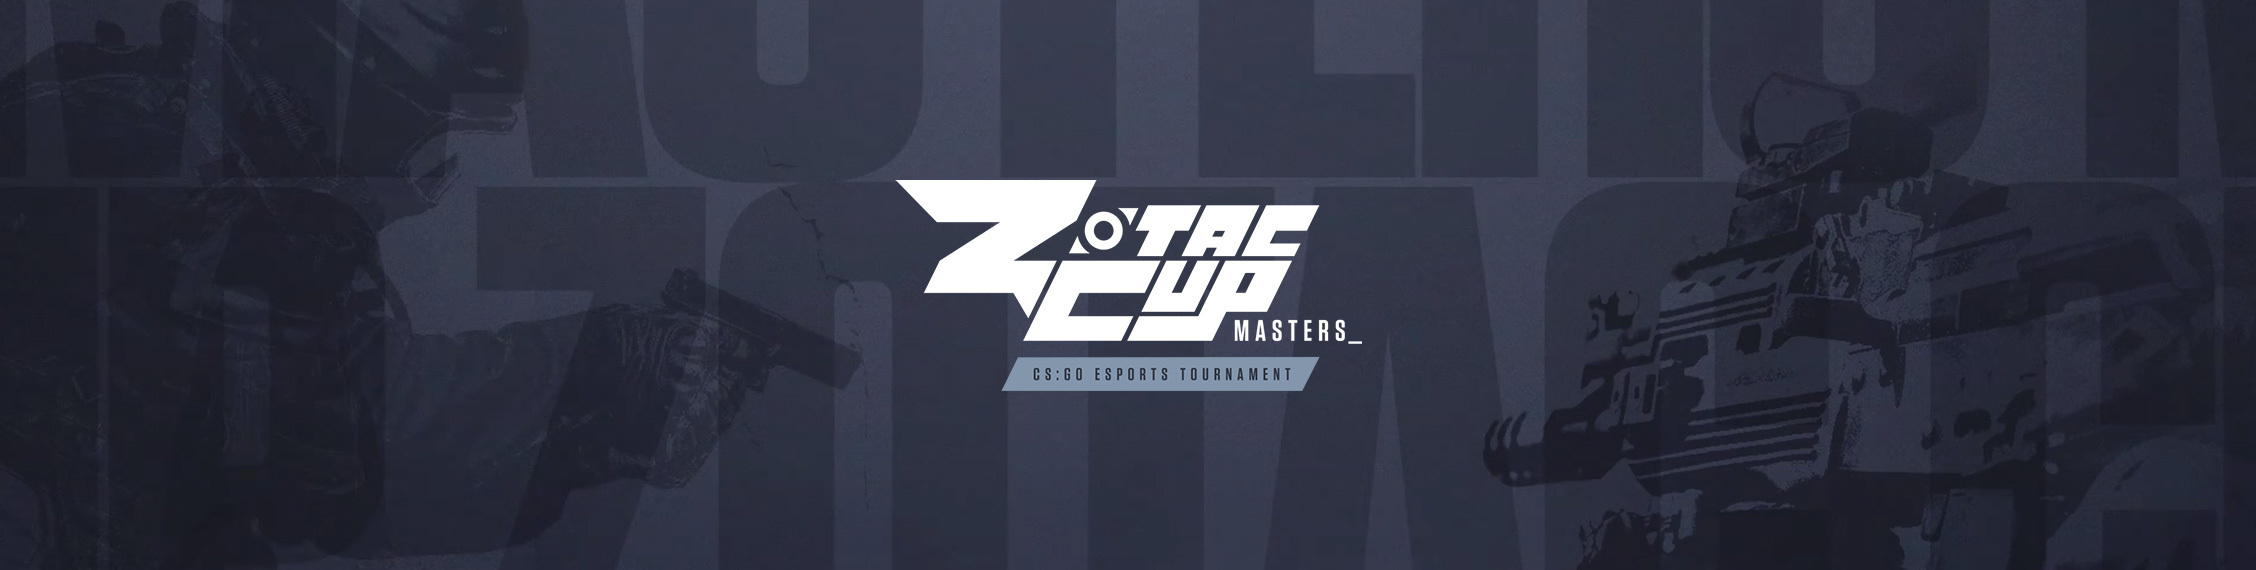 ZOTAC Cup Masters 2018 - Europe